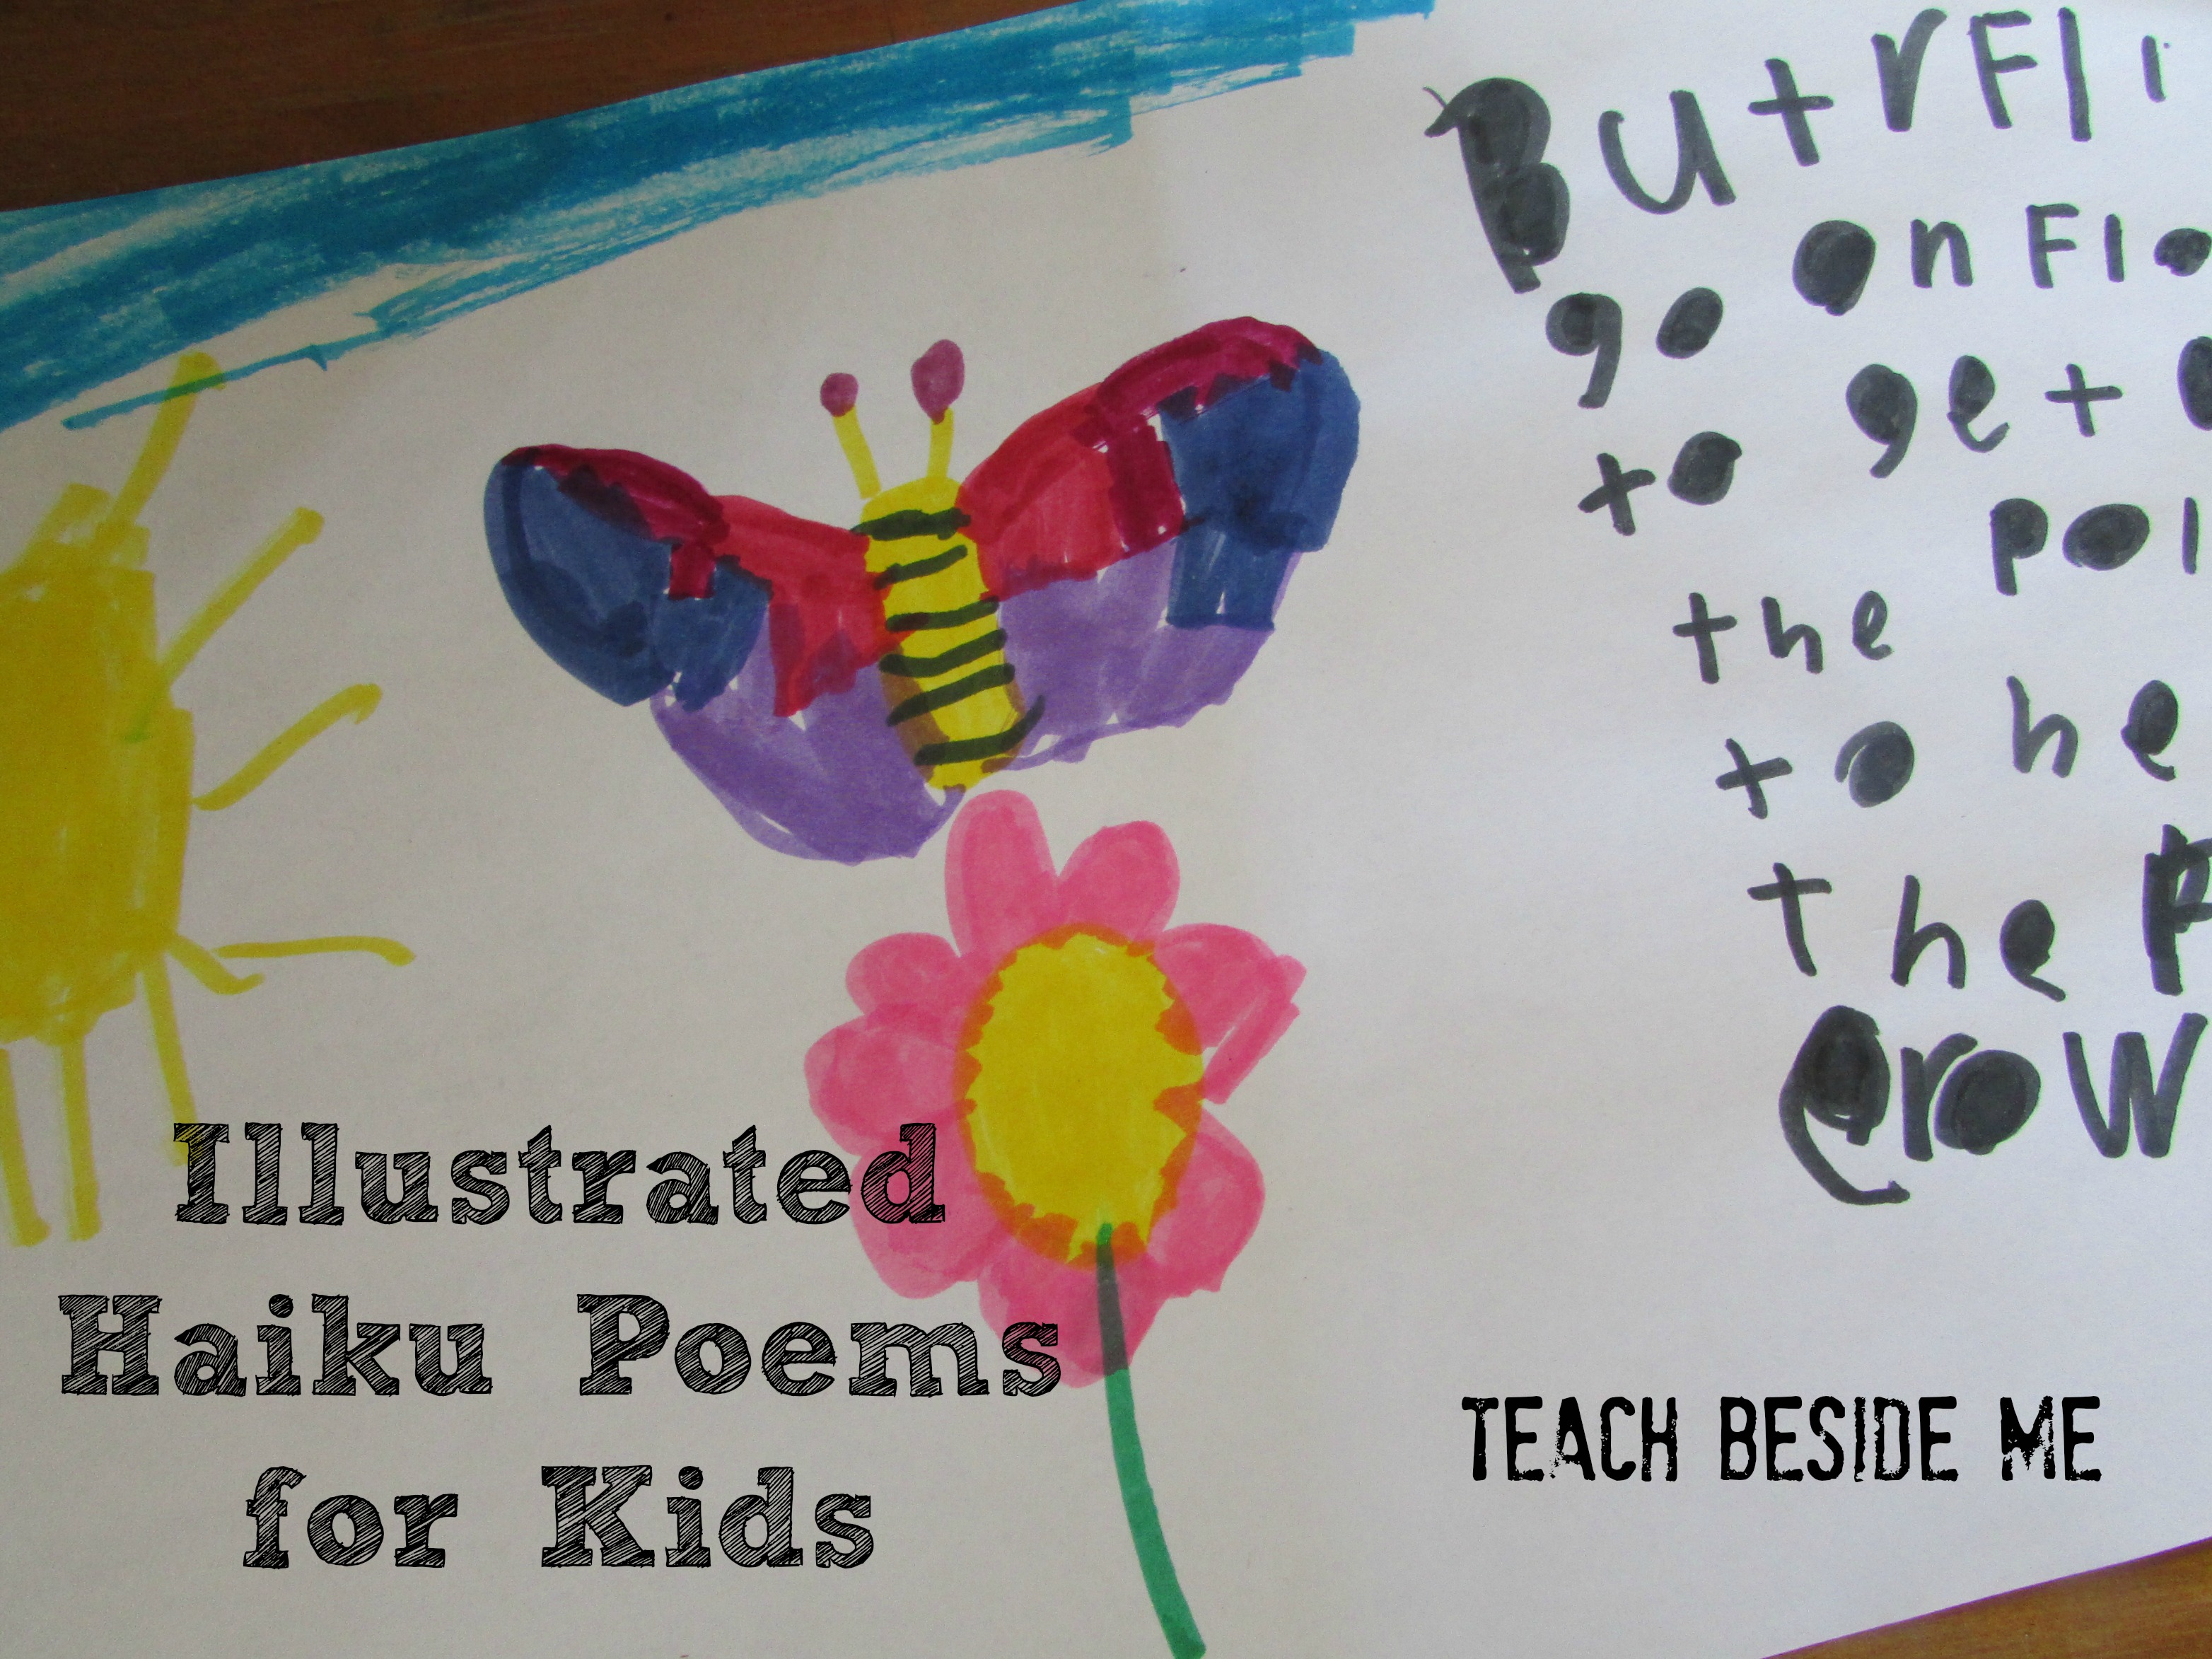 Illustrated Haiku Poems With Kids - Teach Beside Me